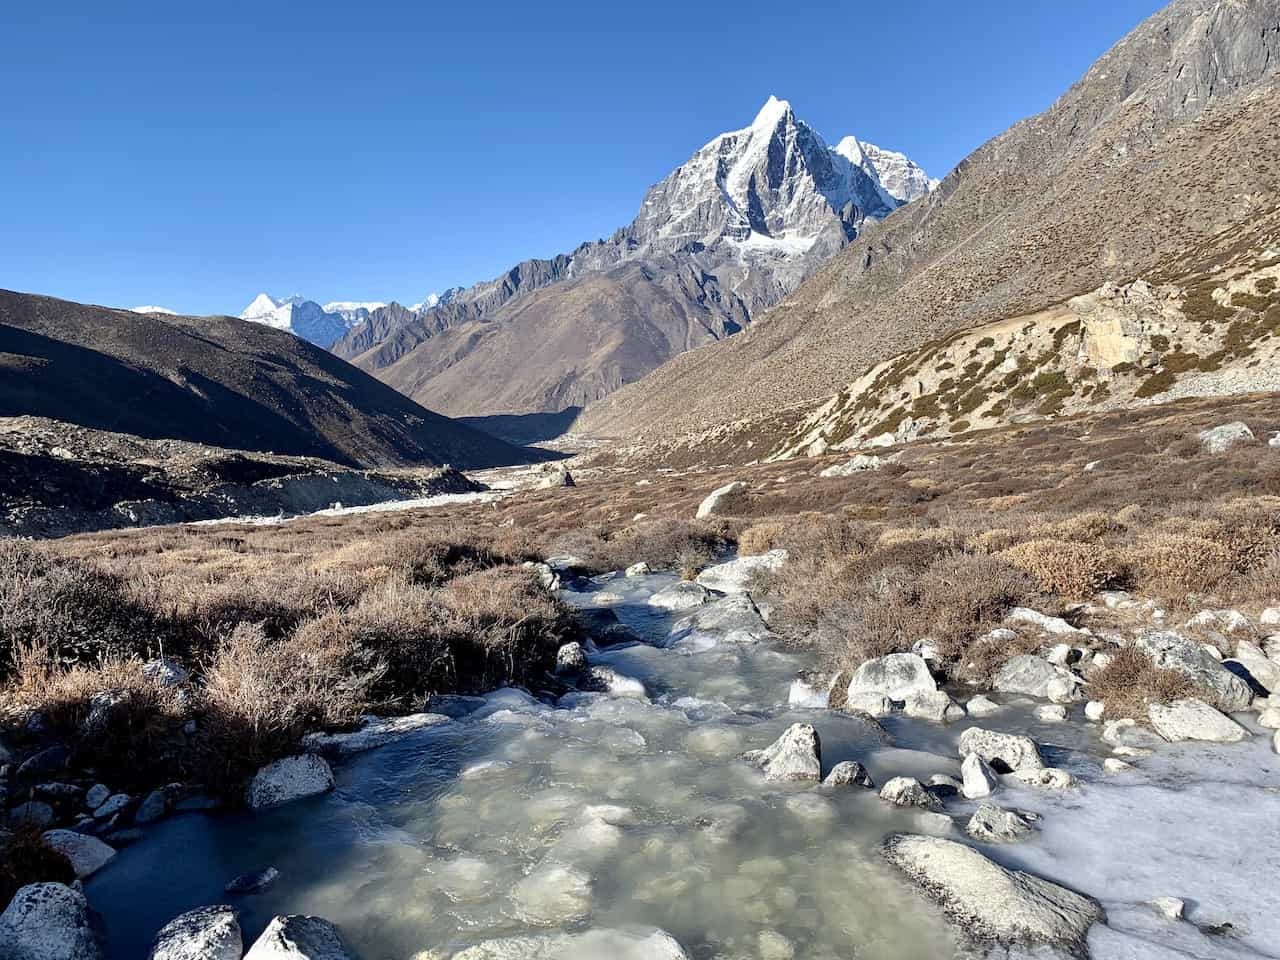 Dingboche to Chukhung River